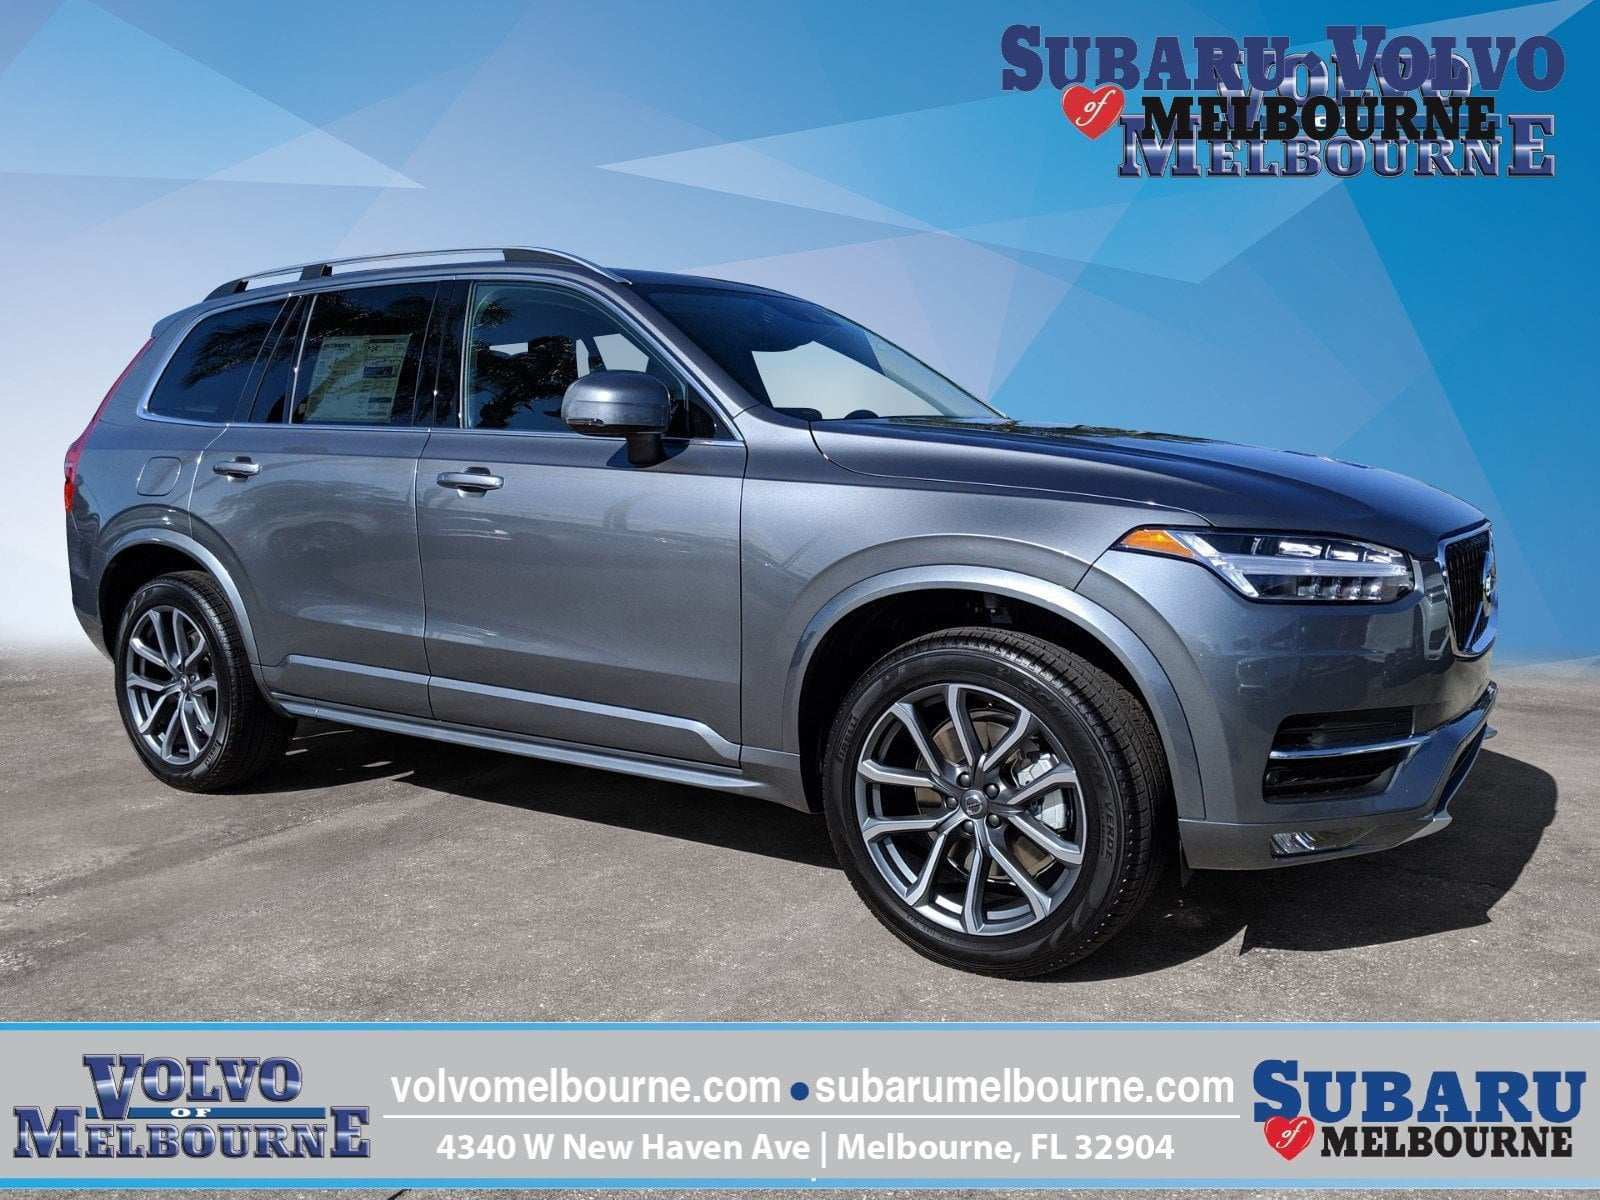 95 Concept of 2019 Volvo Xc90 T5 Momentum Performance And New Engine Performance and New Engine for 2019 Volvo Xc90 T5 Momentum Performance And New Engine